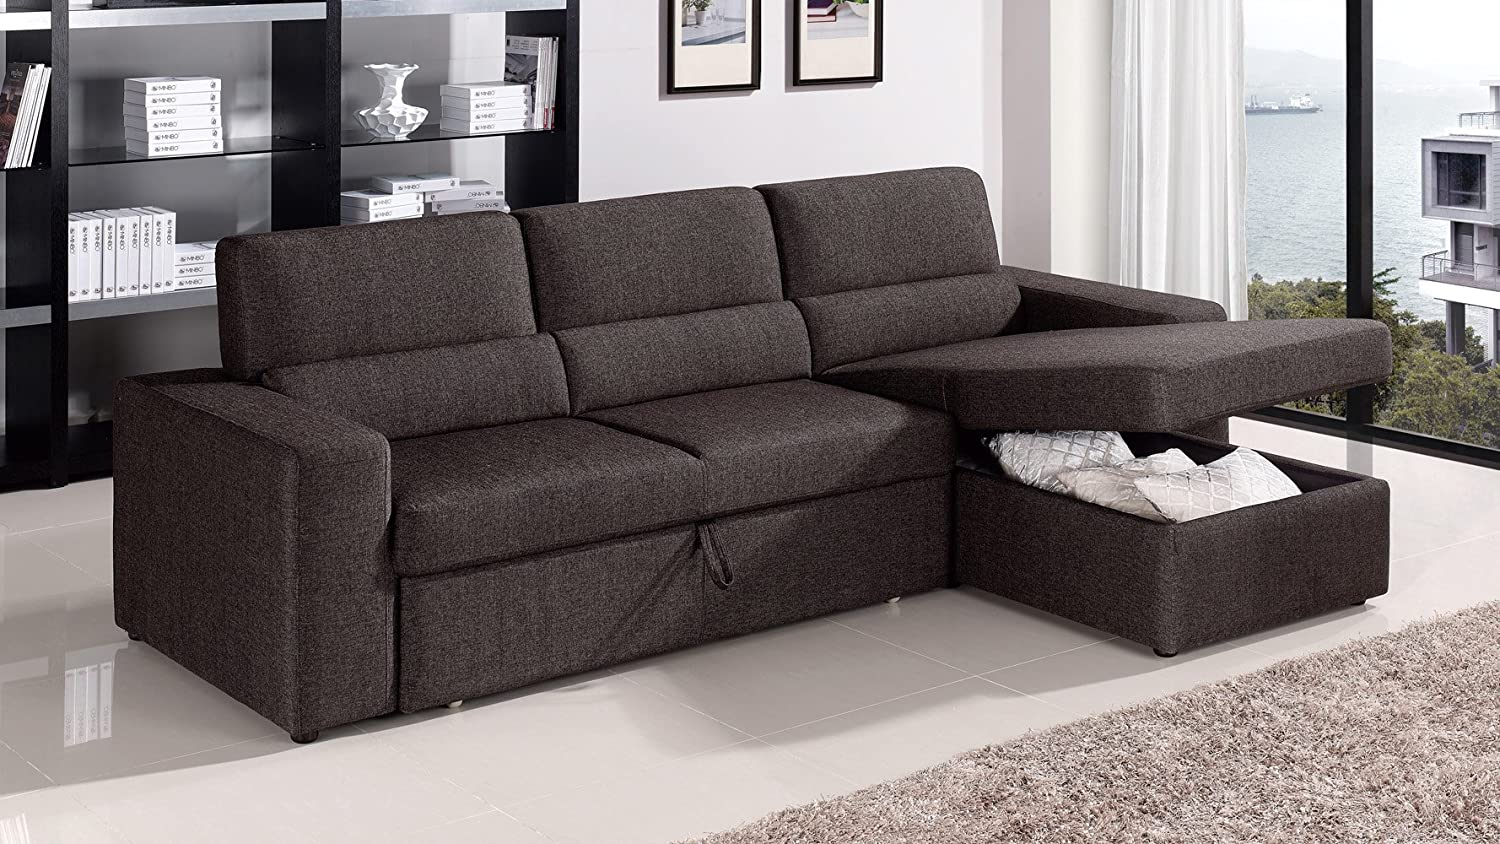 Amazon Black Brown Clubber Sleeper Sectional Sofa Right